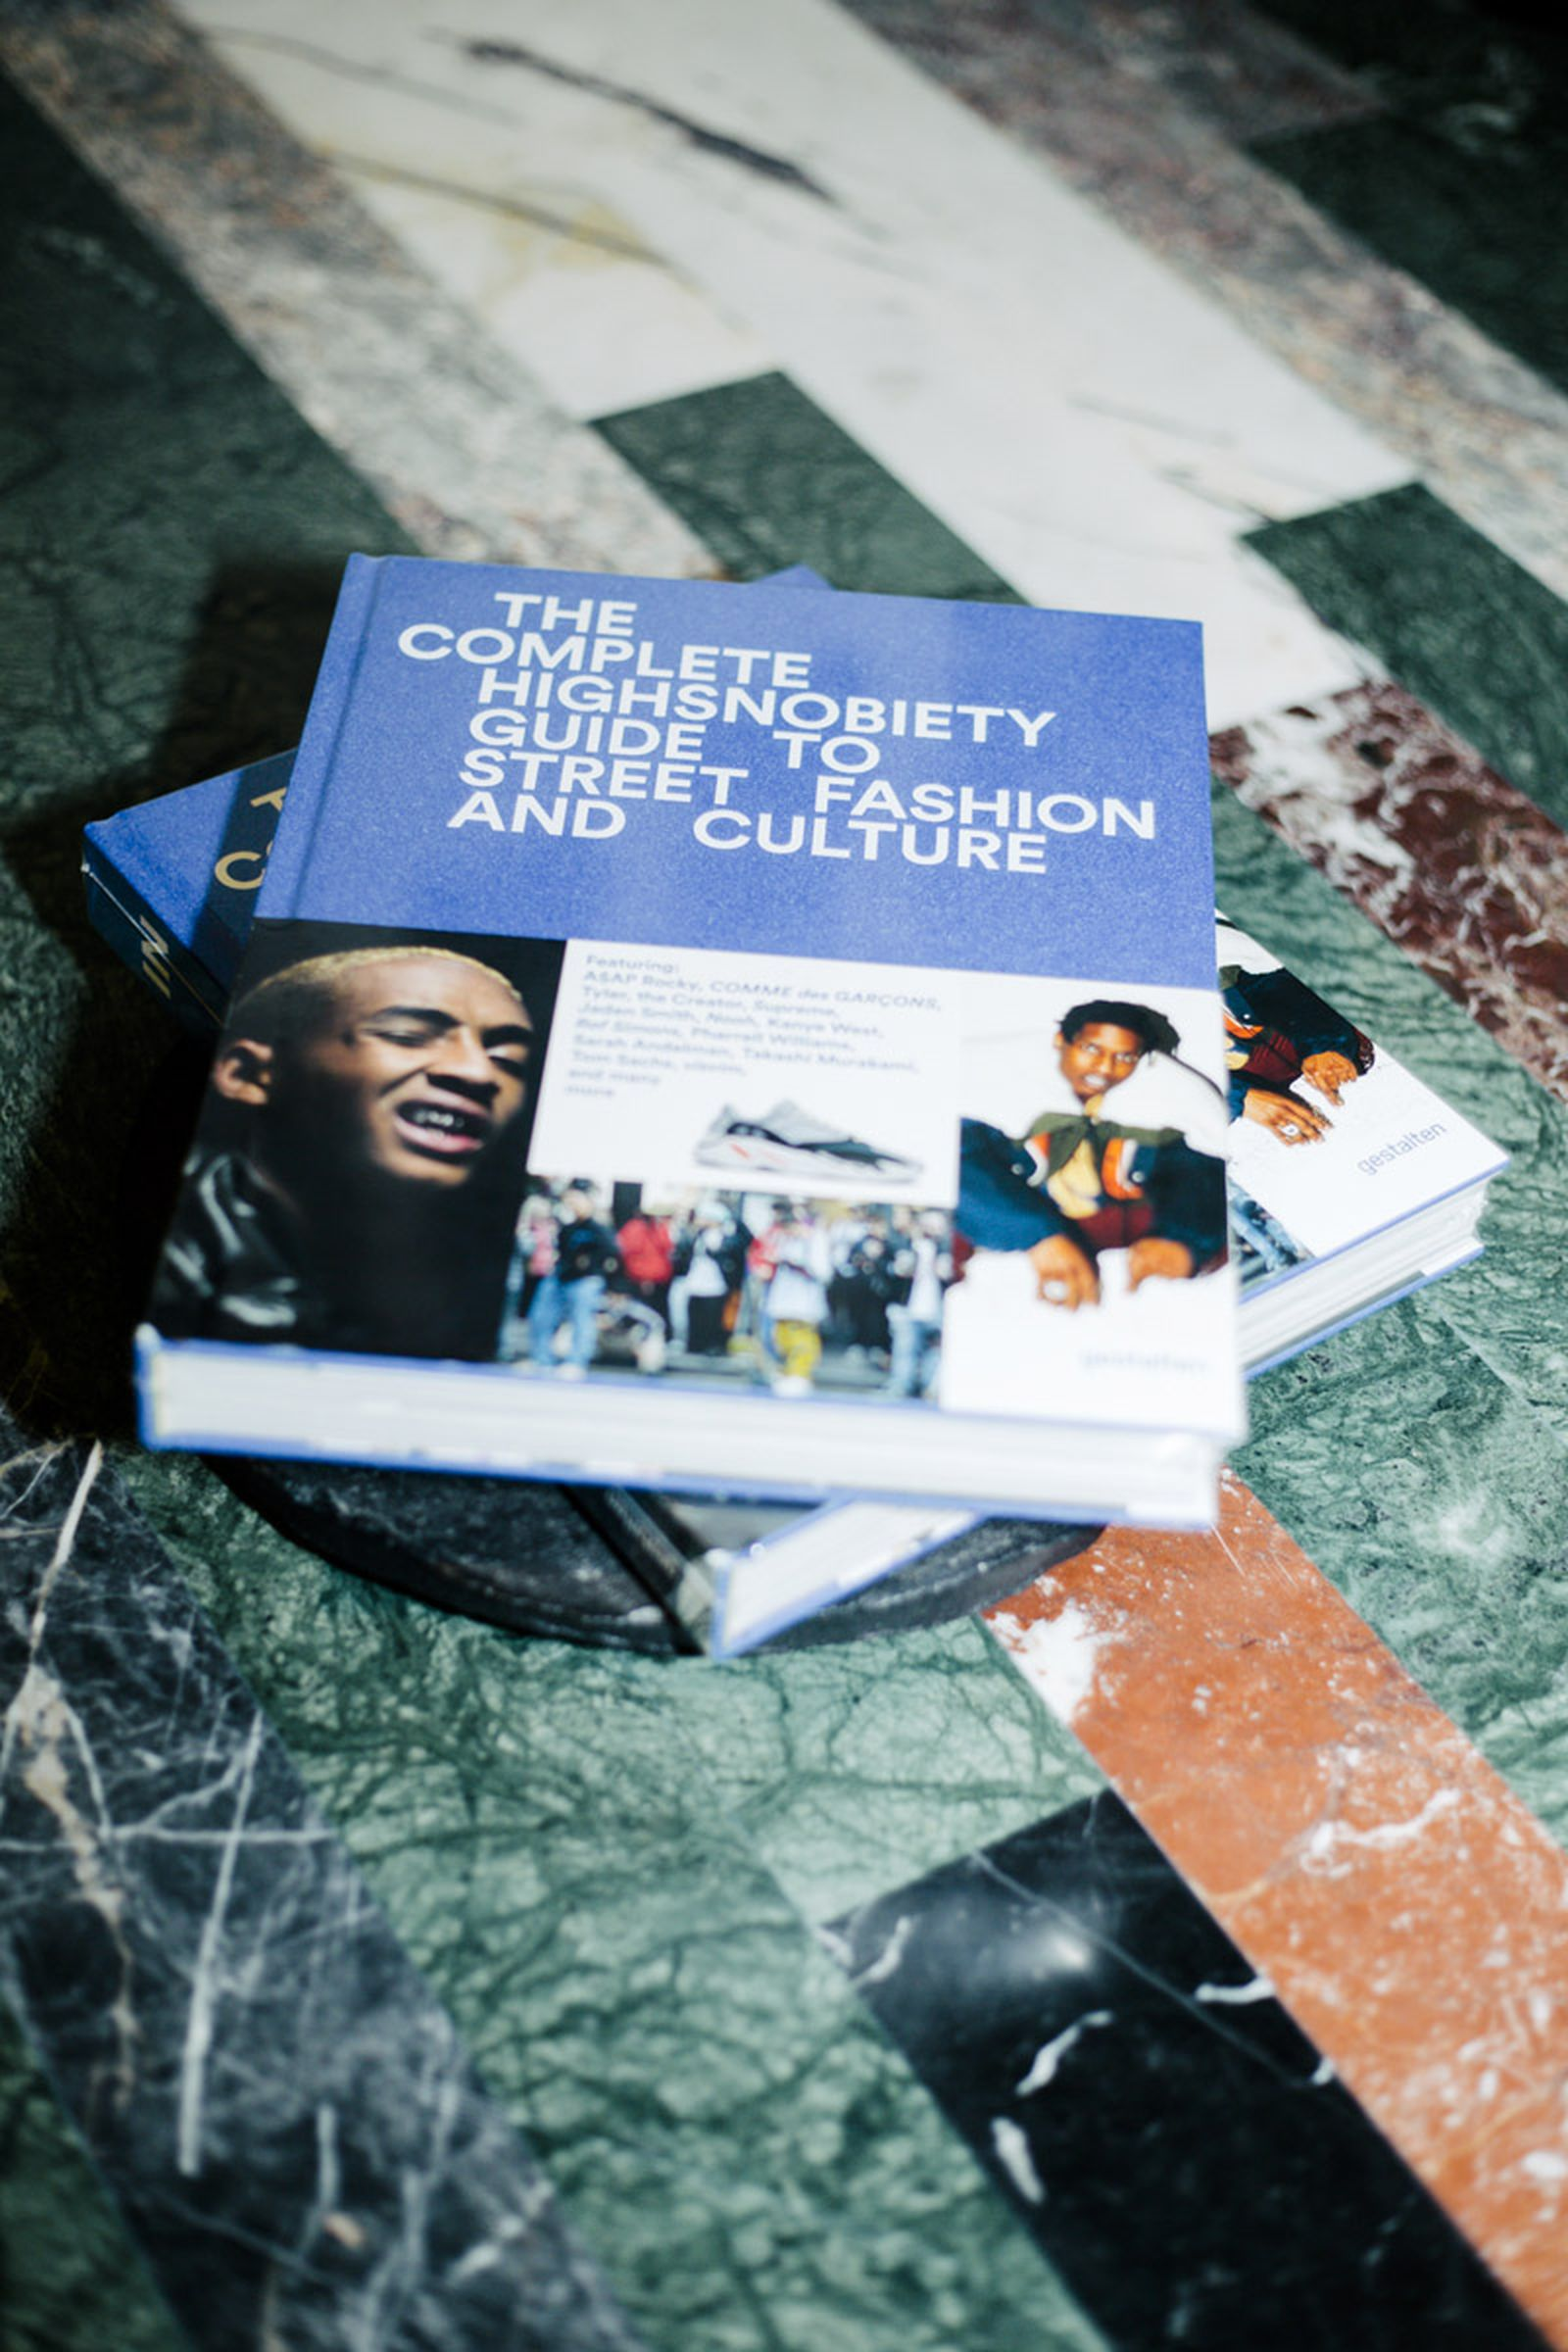 runway meets street according highsnobiety The Incomplete Highsnobiety Guide to Street Fashion and Culture street wear